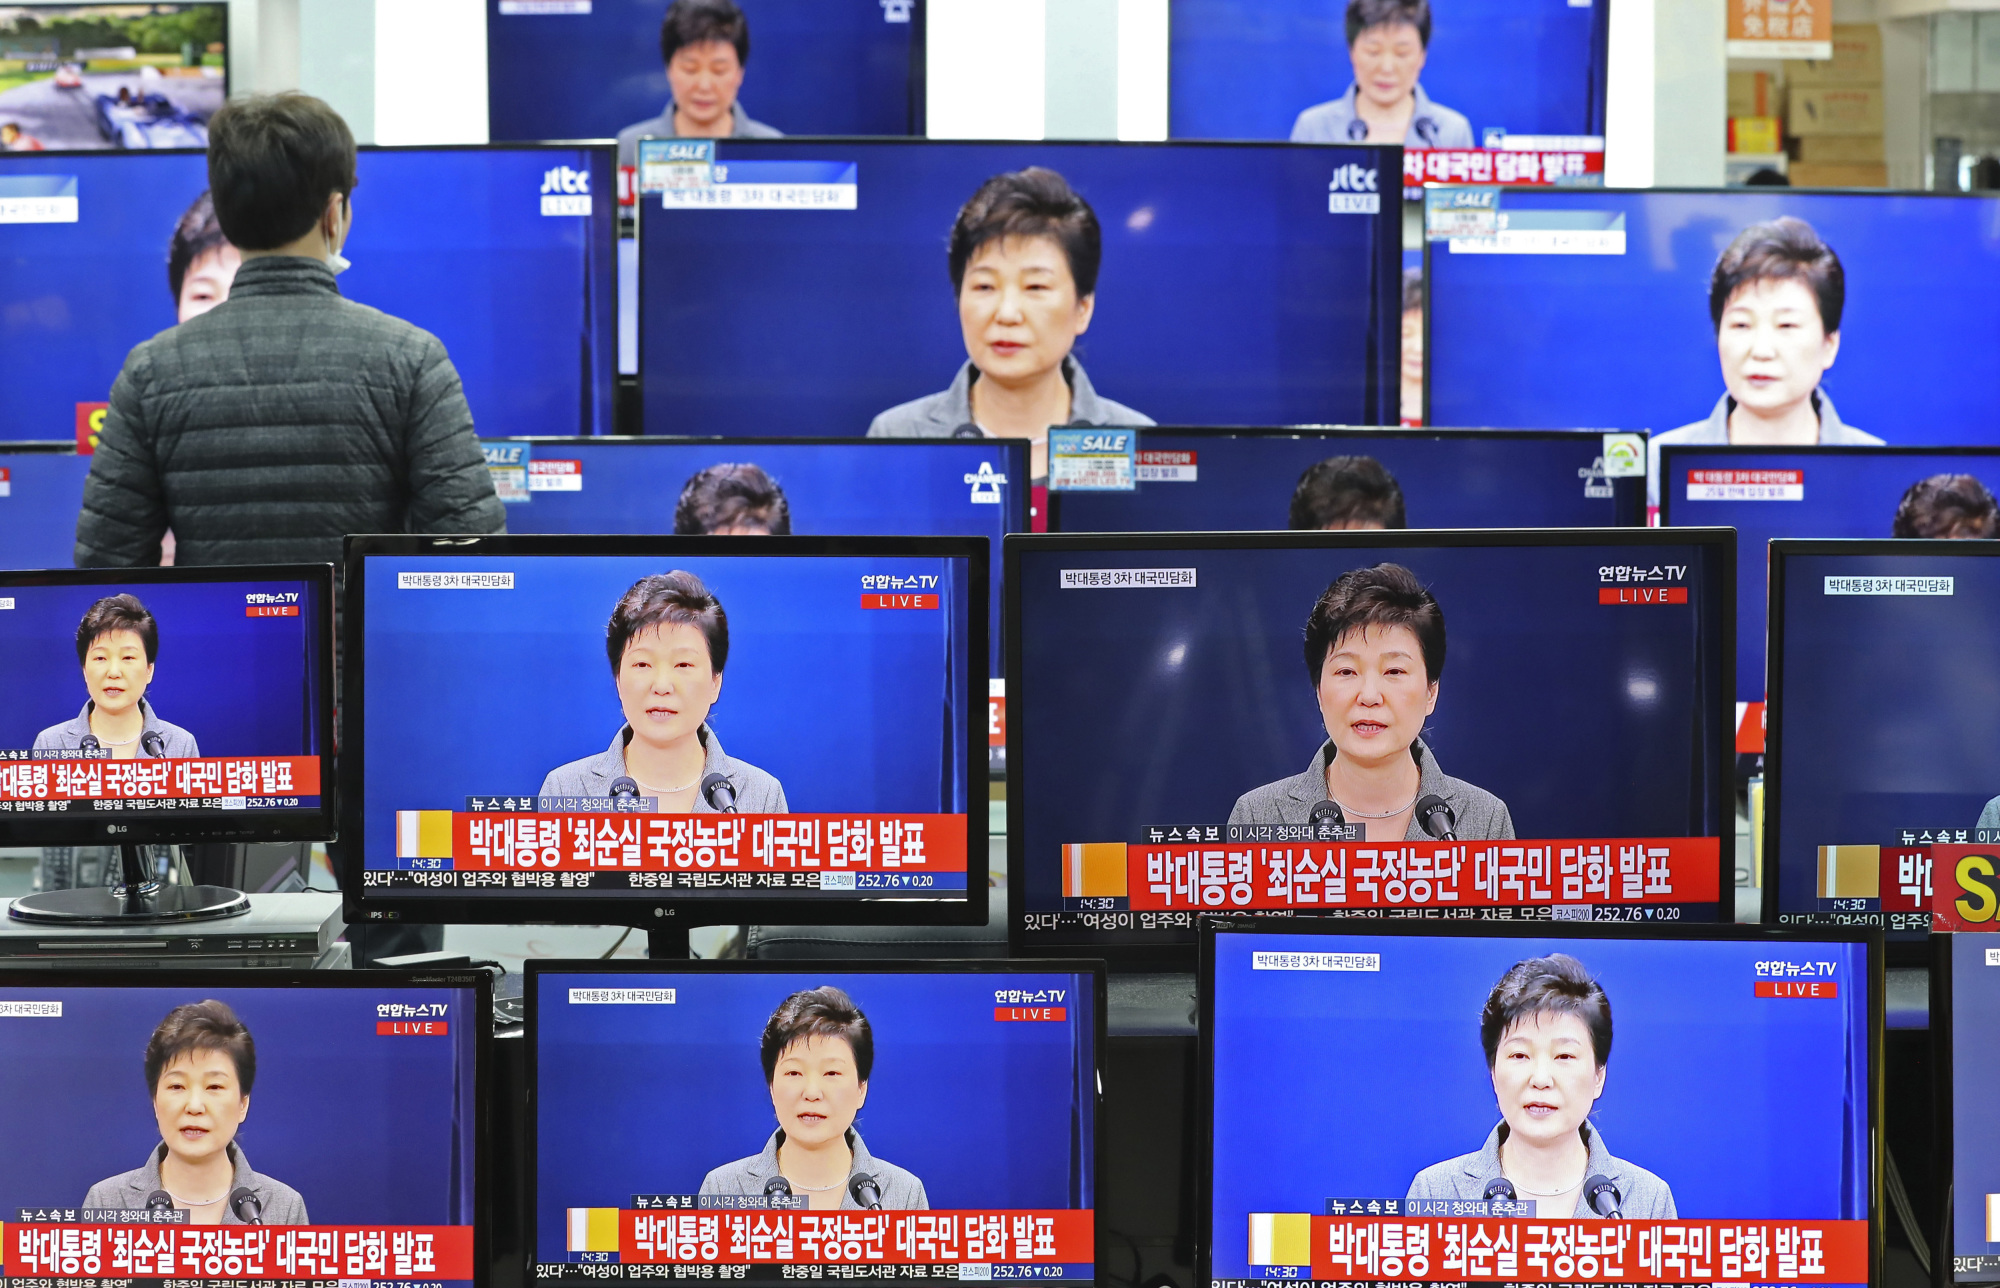 TV screens display the live broadcast of South Korean President Park Geun-hye's public announcement at an electronic shop in Seoul on Tuesday. | AP